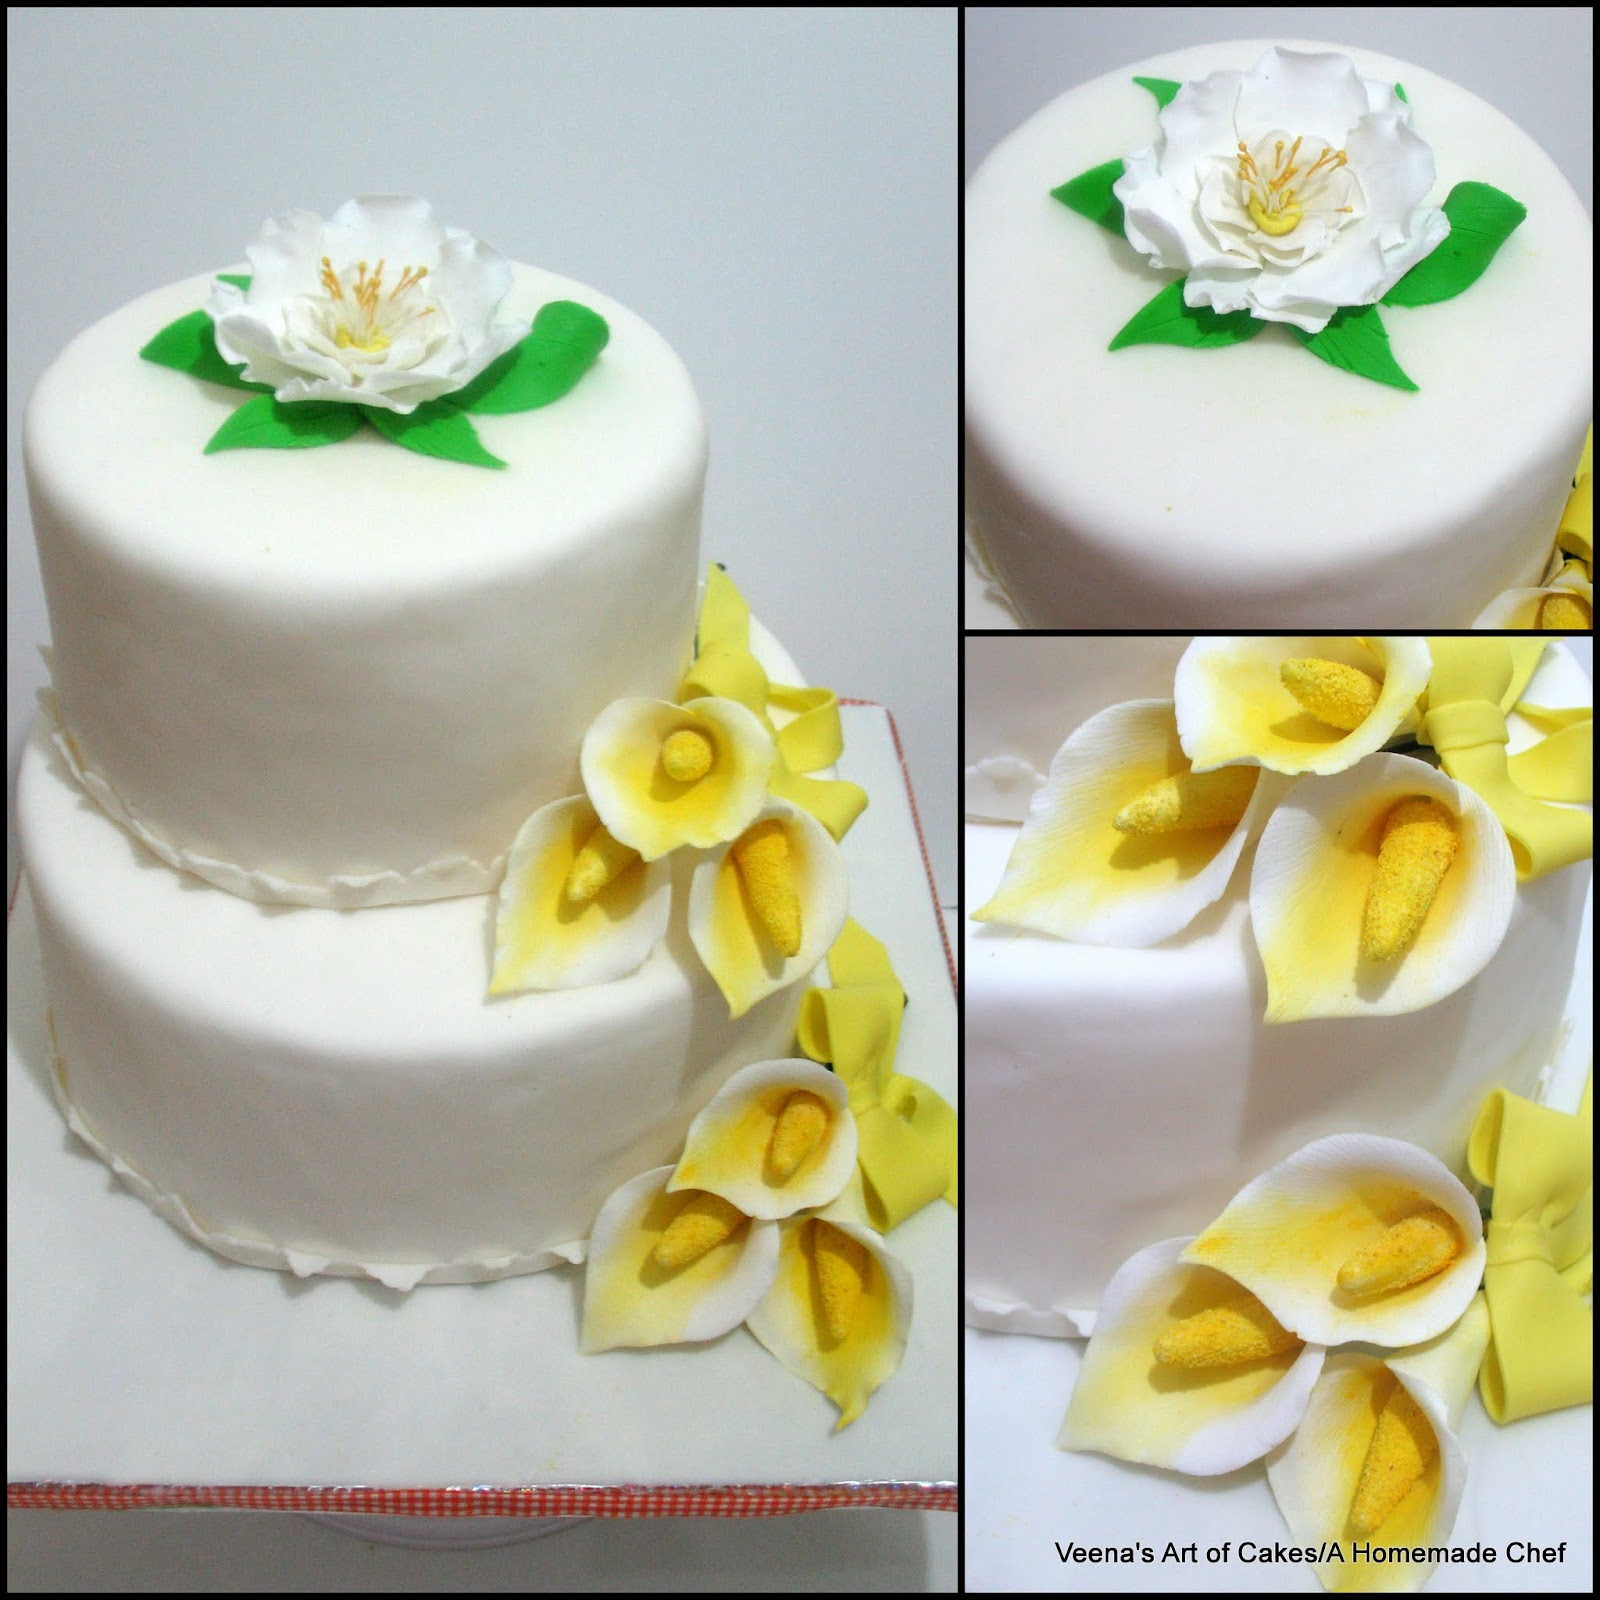 http://4.bp.blogspot.com/-GXrINXX08ns/UKscnfcaNAI/AAAAAAAAK1g/Rl36zs-ccOE/s1600/Two%20tier%20wedding%20with%20Calla%20Lilies.jpg